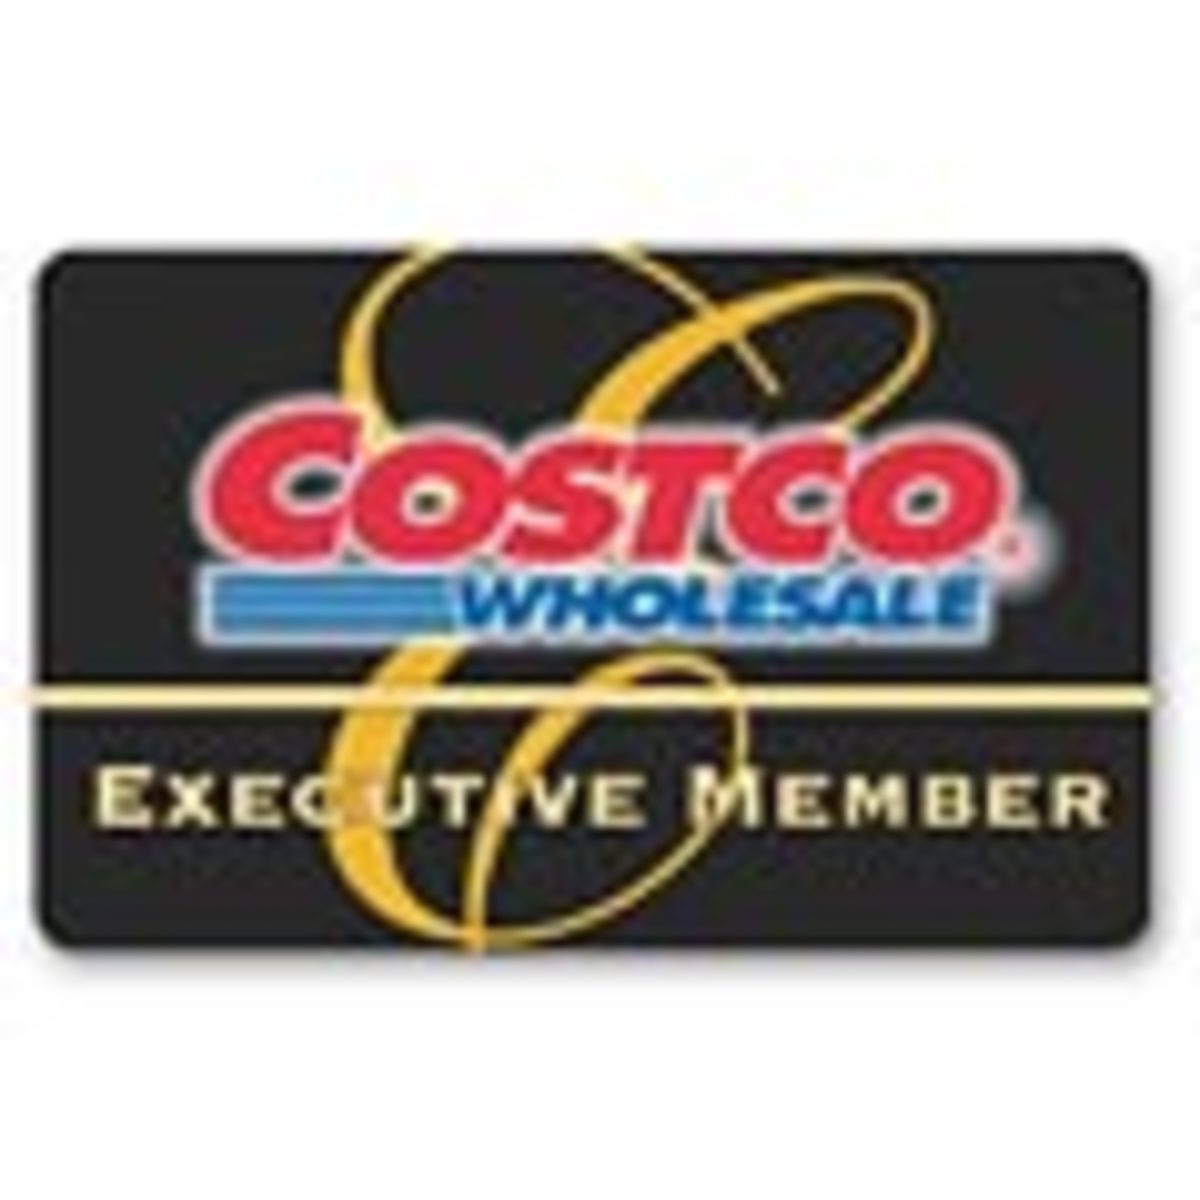 Costco.ca: Costco Canada